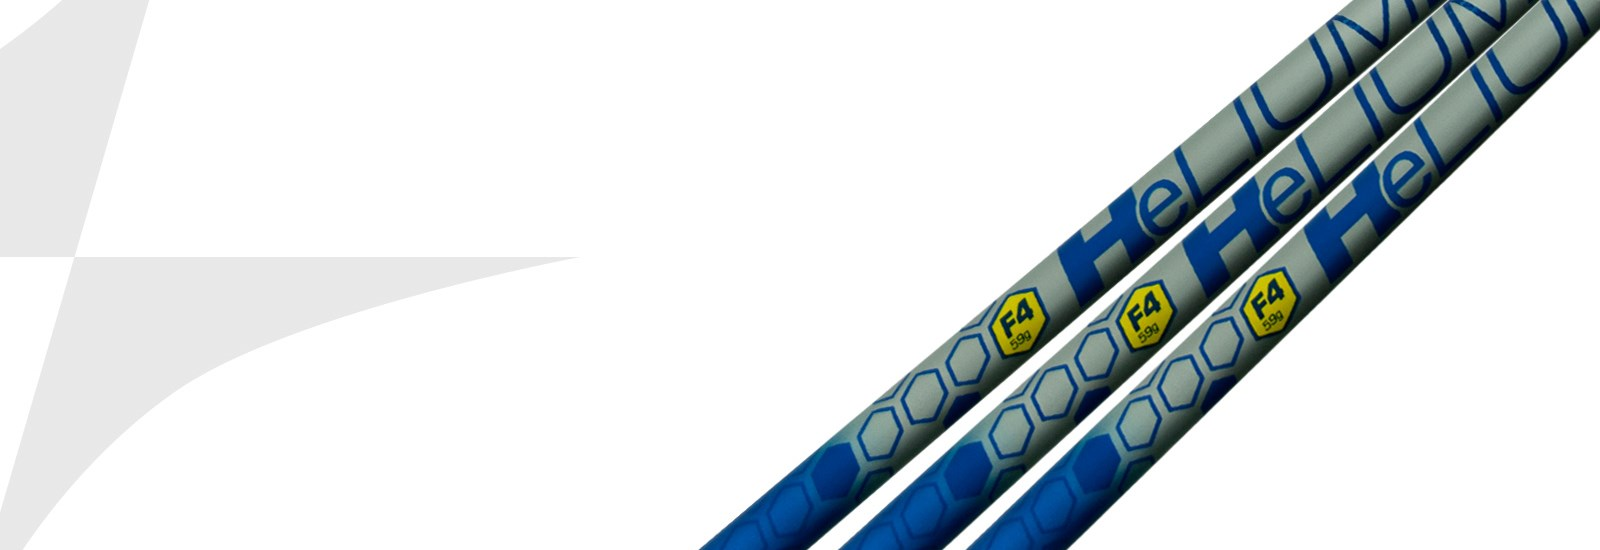 UST Mamiya Helium Golf Shafts